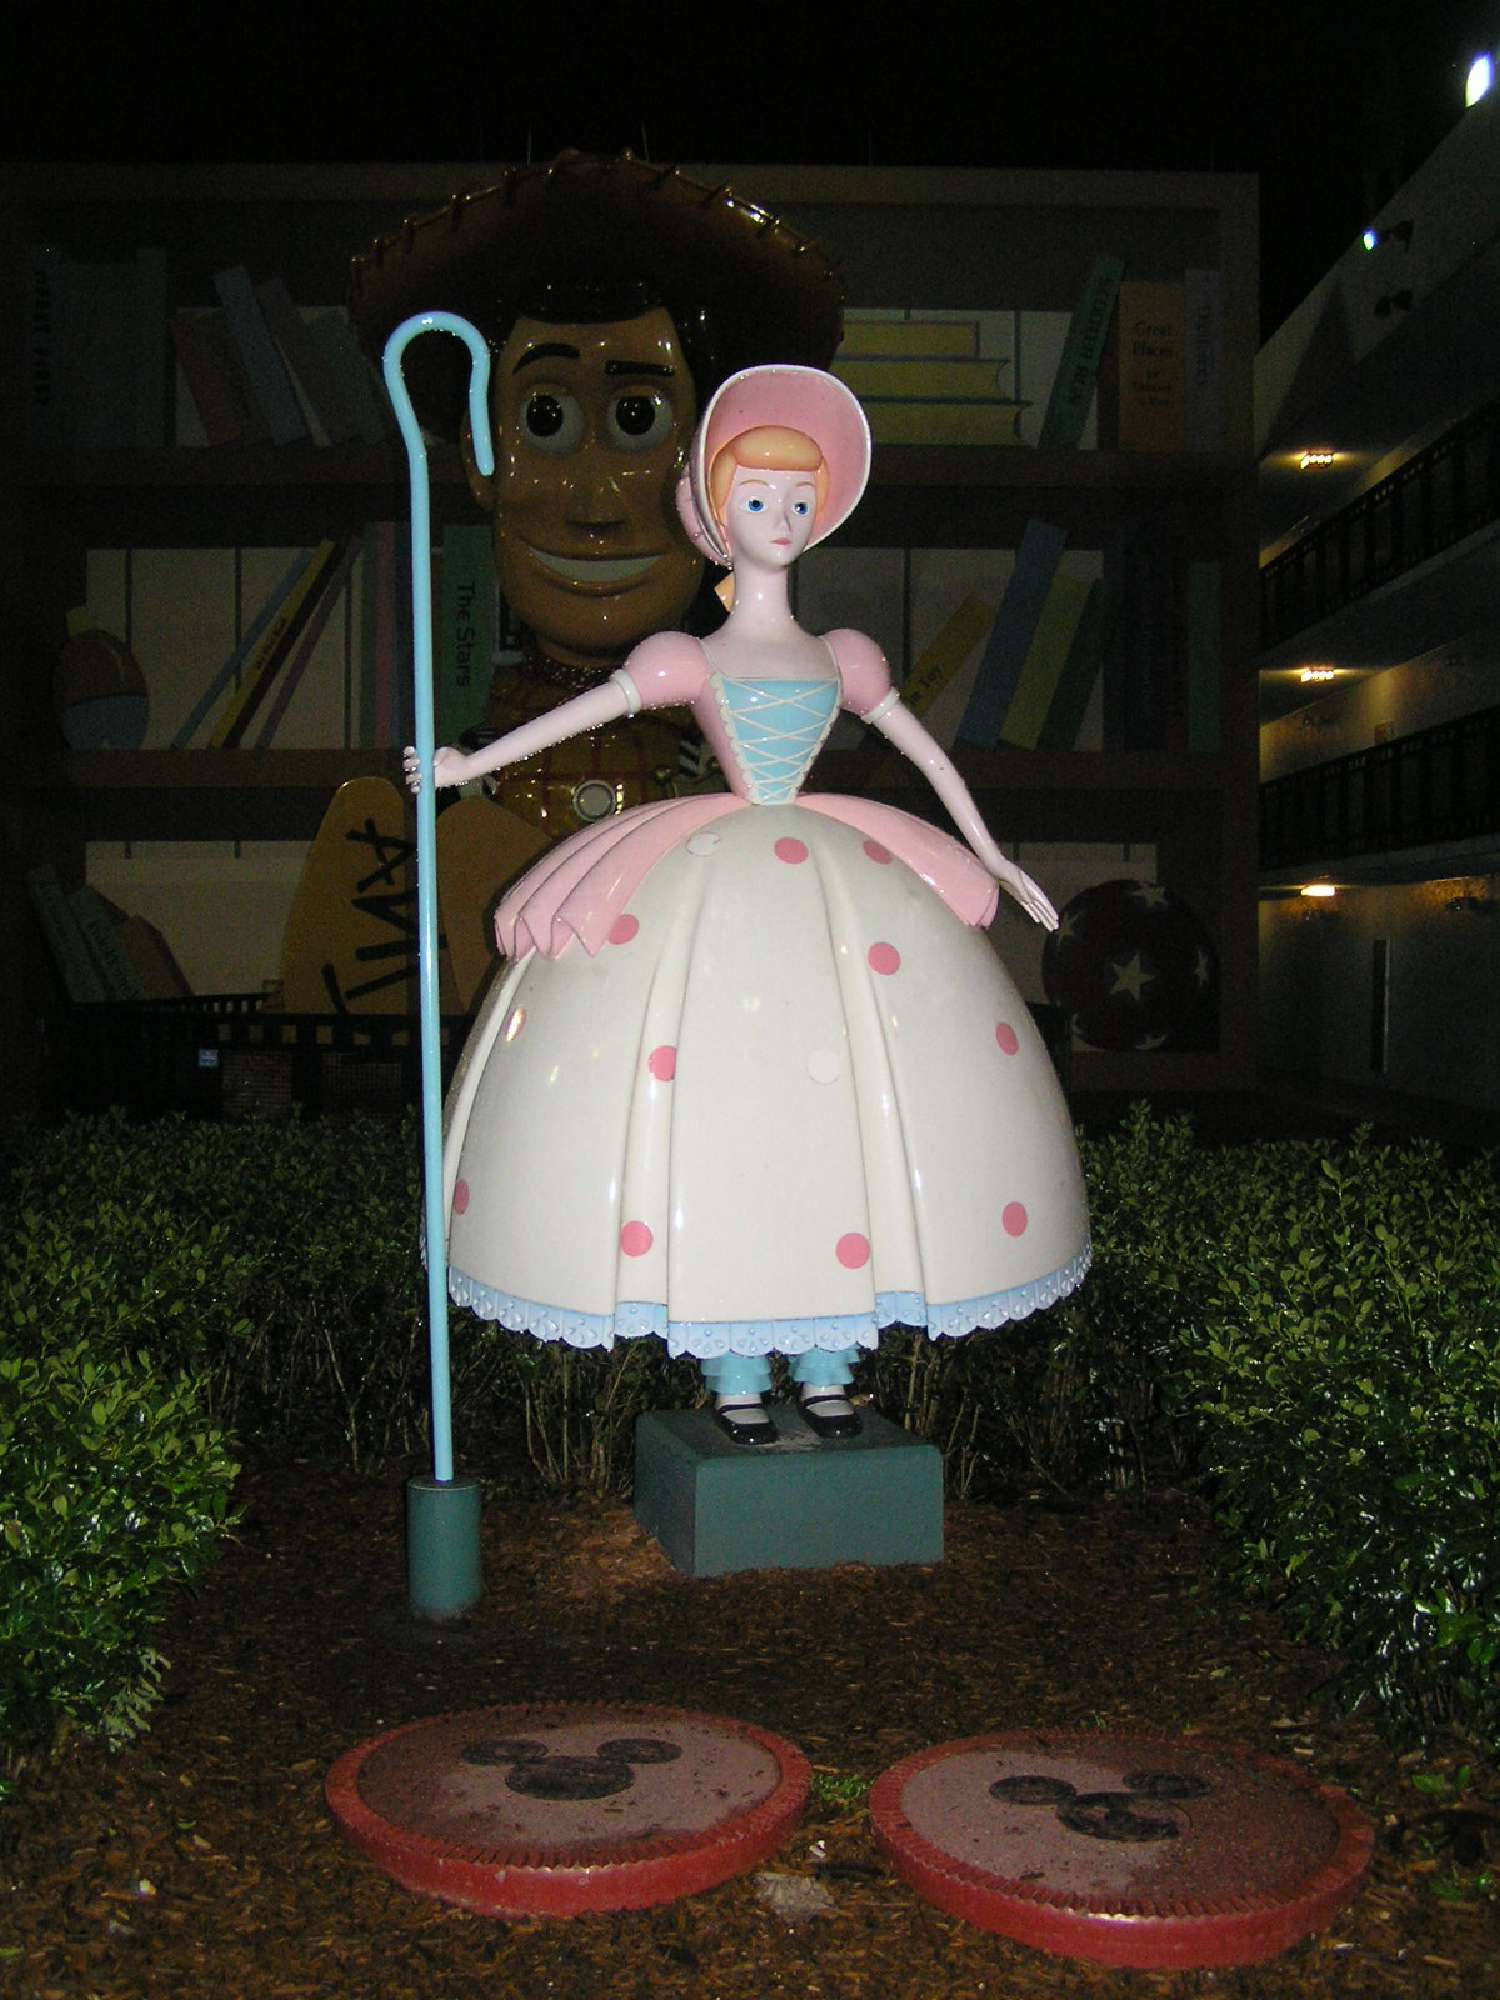 Little Bo Peep outside the Toy Story buildings at Disney's All-Star Movies Resort